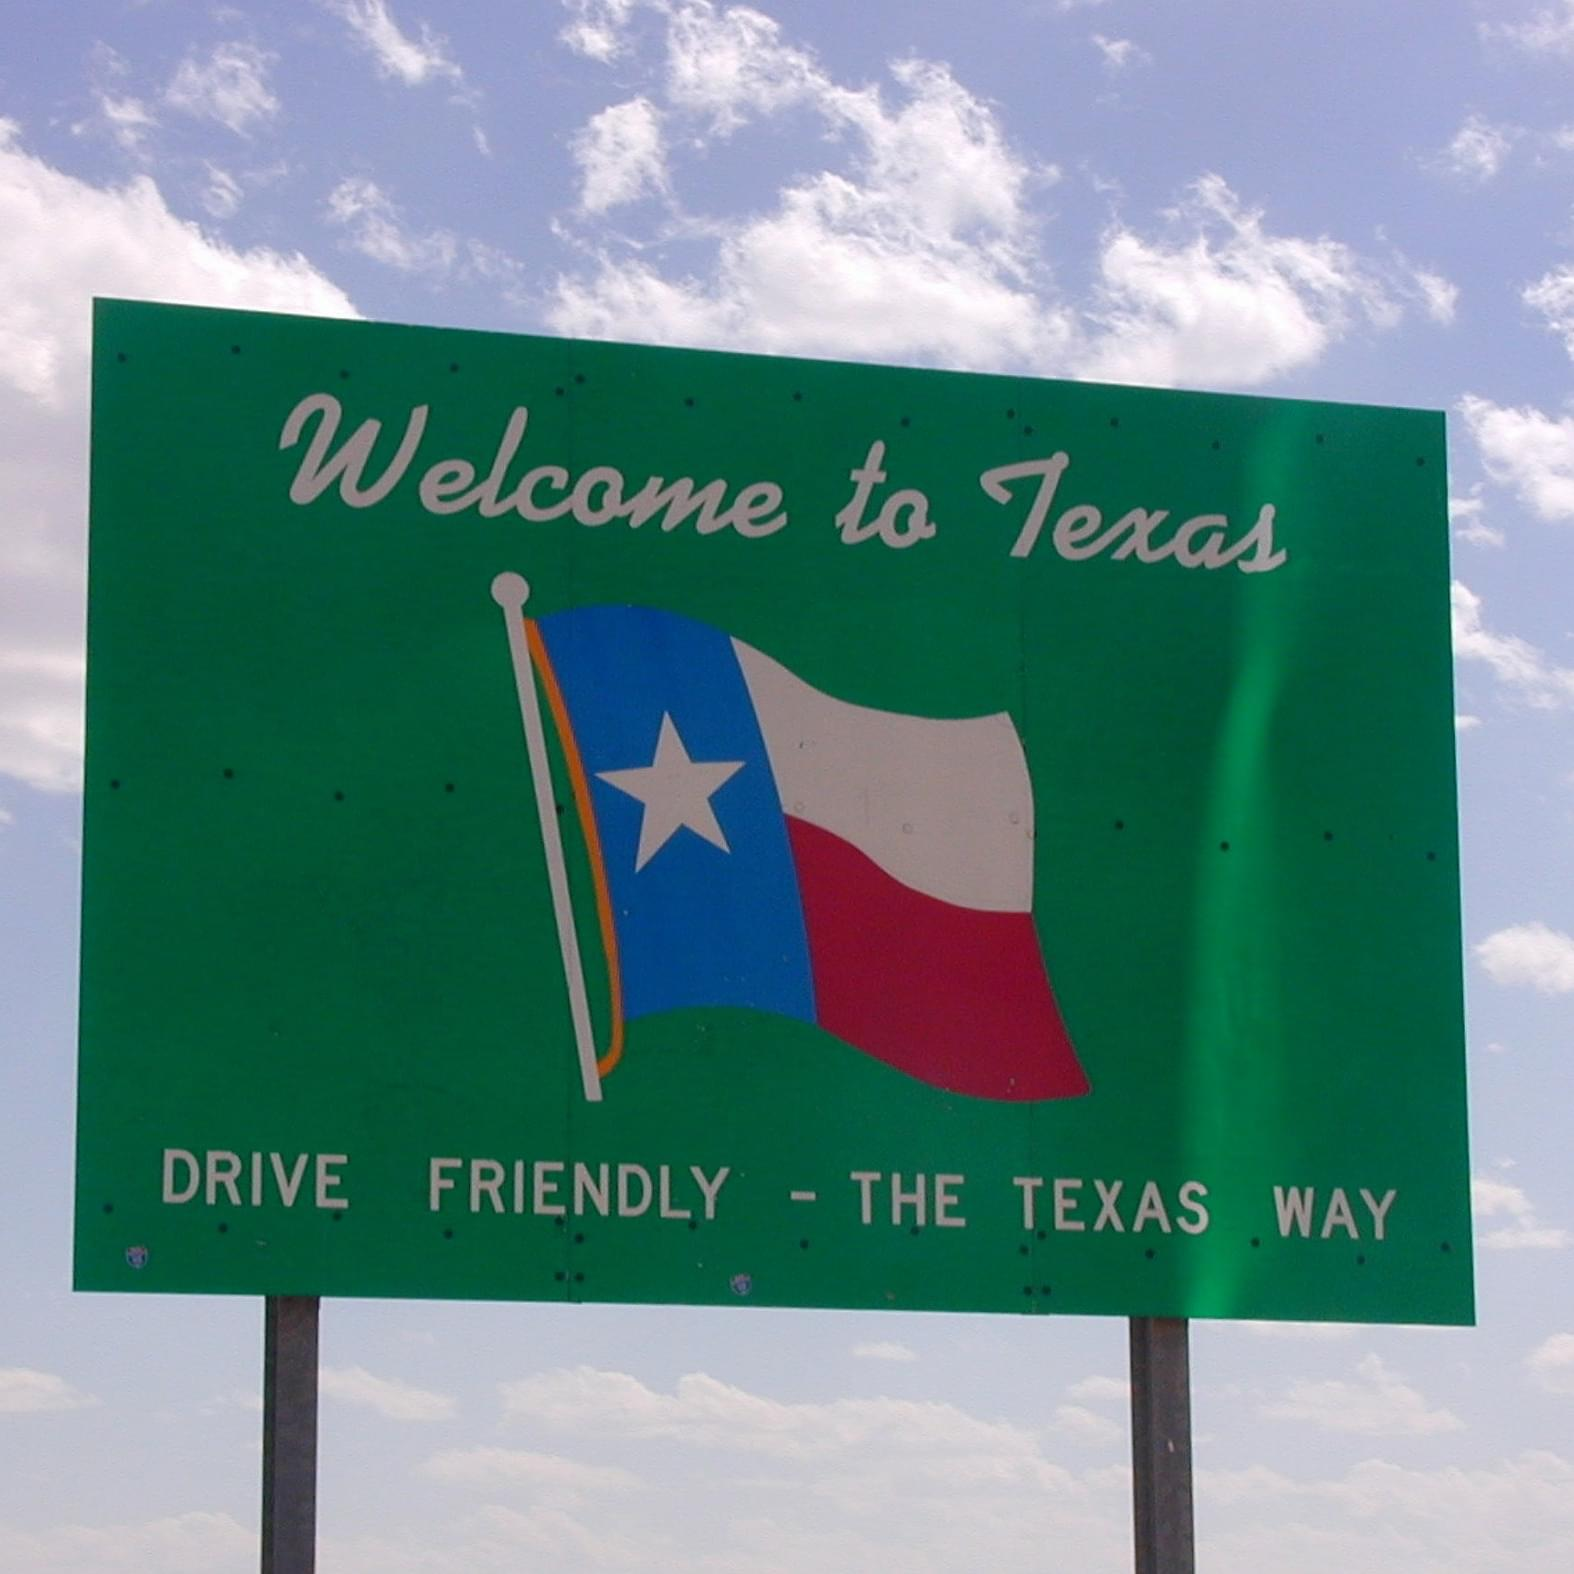 TX requiring quarantine for travelers coming from LA